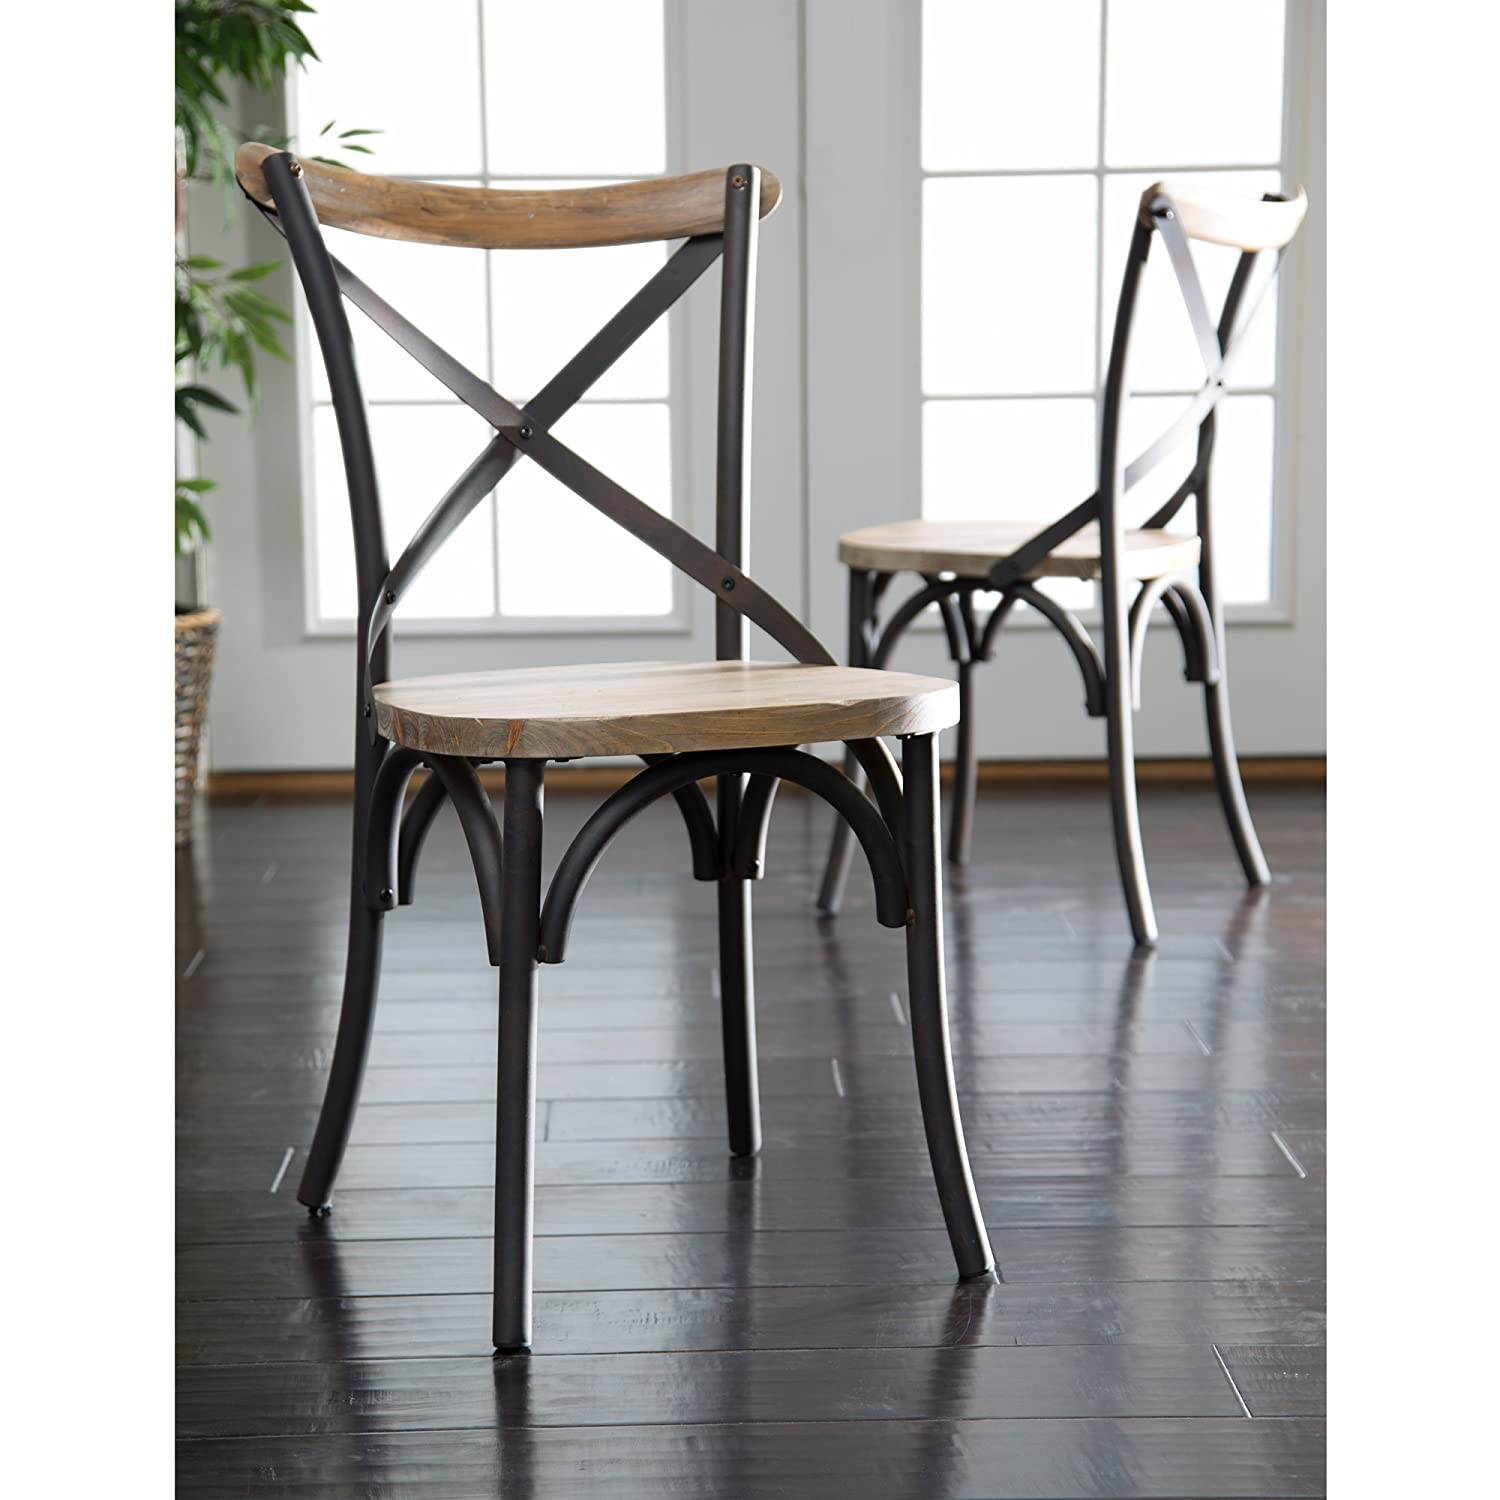 Amazon com we furniture urban reclamation deluxe dining chairs set of 2 chairs